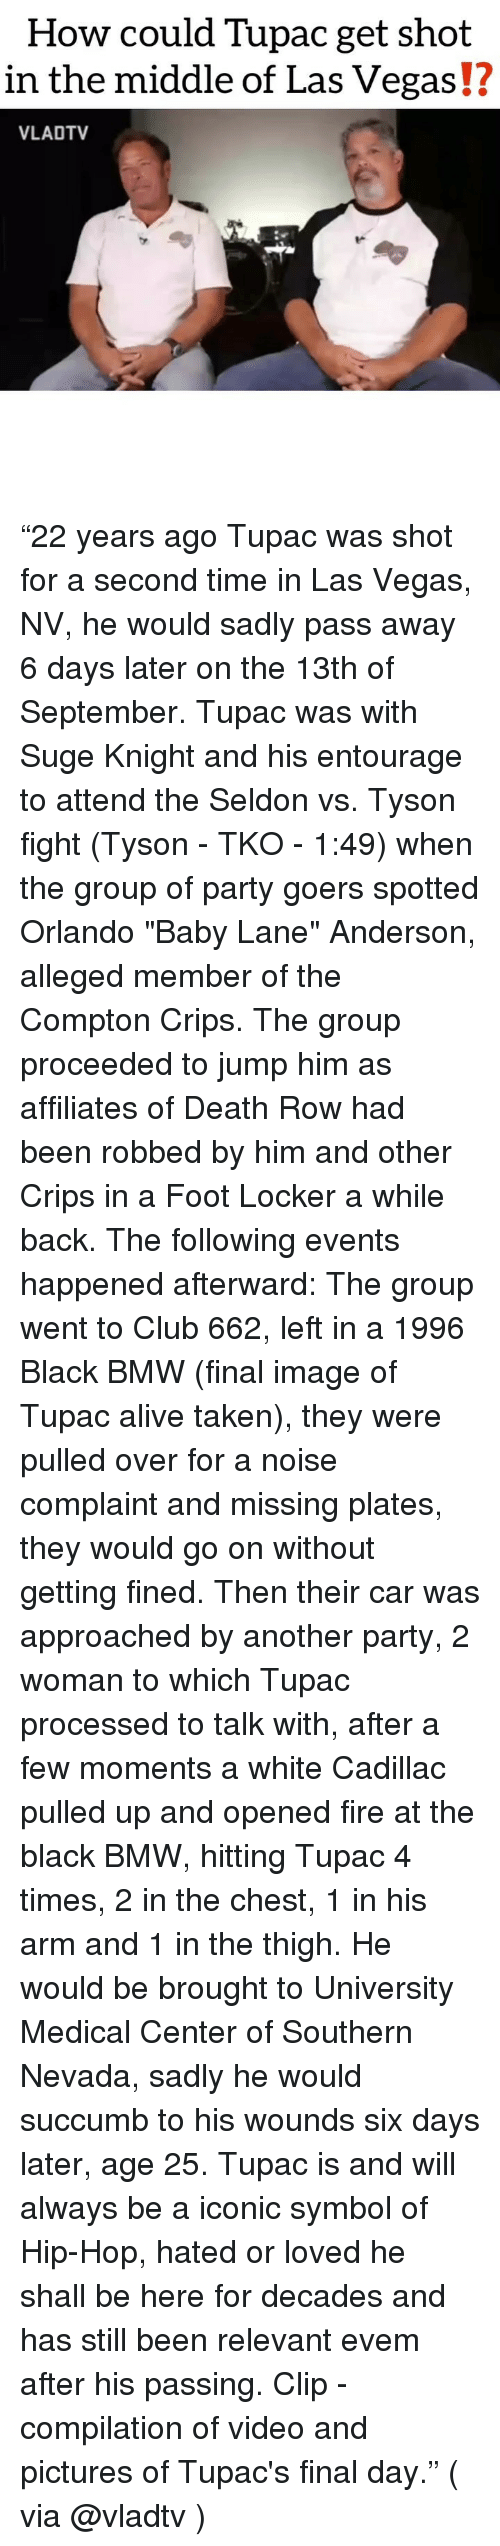 "las vegas nv: How could Tupac get shot  in the middle of Las Vegas!?  VLADTV ""22 years ago Tupac was shot for a second time in Las Vegas, NV, he would sadly pass away 6 days later on the 13th of September. Tupac was with Suge Knight and his entourage to attend the Seldon vs. Tyson fight (Tyson - TKO - 1:49) when the group of party goers spotted Orlando ""Baby Lane"" Anderson, alleged member of the Compton Crips. The group proceeded to jump him as affiliates of Death Row had been robbed by him and other Crips in a Foot Locker a while back. The following events happened afterward: The group went to Club 662, left in a 1996 Black BMW (final image of Tupac alive taken), they were pulled over for a noise complaint and missing plates, they would go on without getting fined. Then their car was approached by another party, 2 woman to which Tupac processed to talk with, after a few moments a white Cadillac pulled up and opened fire at the black BMW, hitting Tupac 4 times, 2 in the chest, 1 in his arm and 1 in the thigh. He would be brought to University Medical Center of Southern Nevada, sadly he would succumb to his wounds six days later, age 25. Tupac is and will always be a iconic symbol of Hip-Hop, hated or loved he shall be here for decades and has still been relevant evem after his passing. Clip - compilation of video and pictures of Tupac's final day."" ( via @vladtv )"